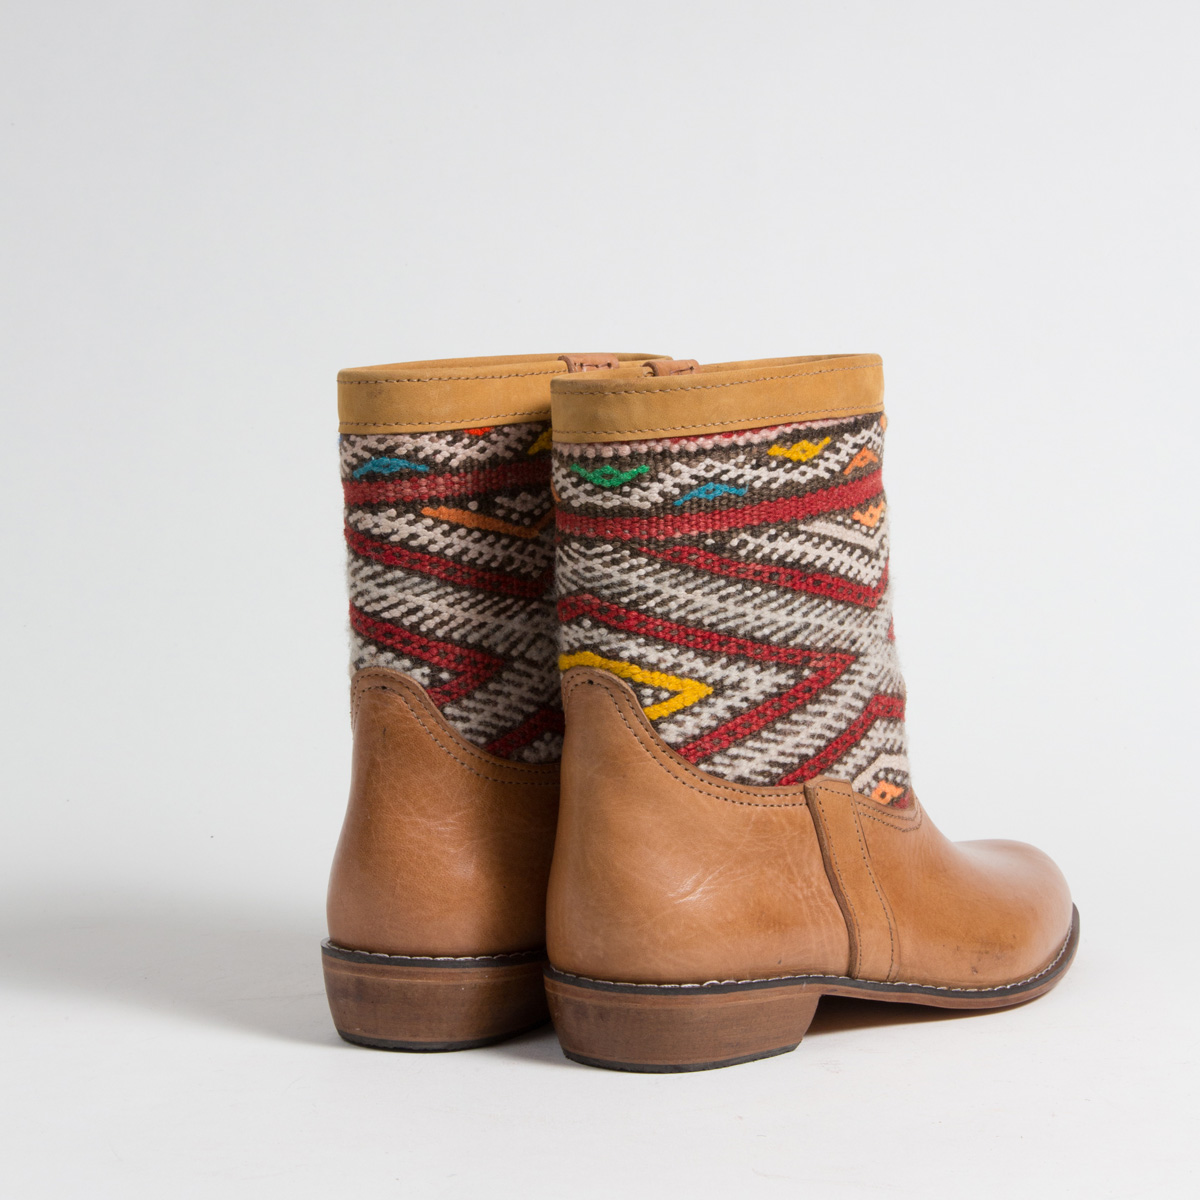 Bottines Kilim cuir mababouche artisanales (Réf. MCC2-42)